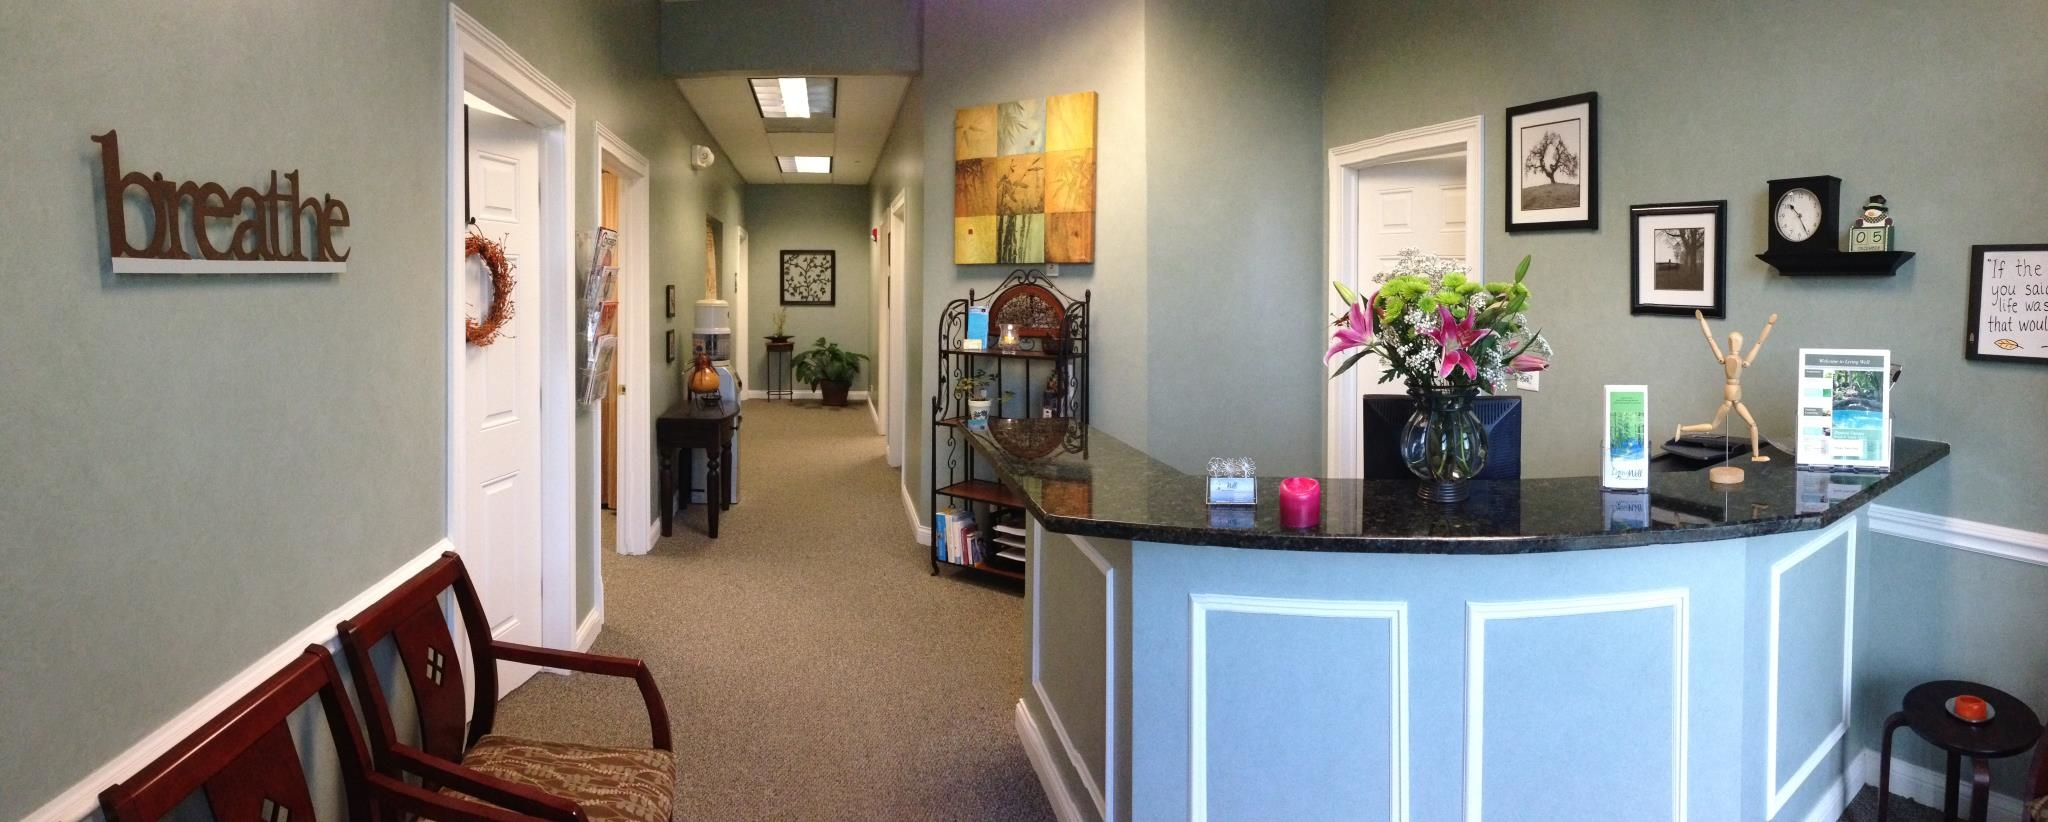 Living Well Physical Therapy in Mundelein, IL, photo #5